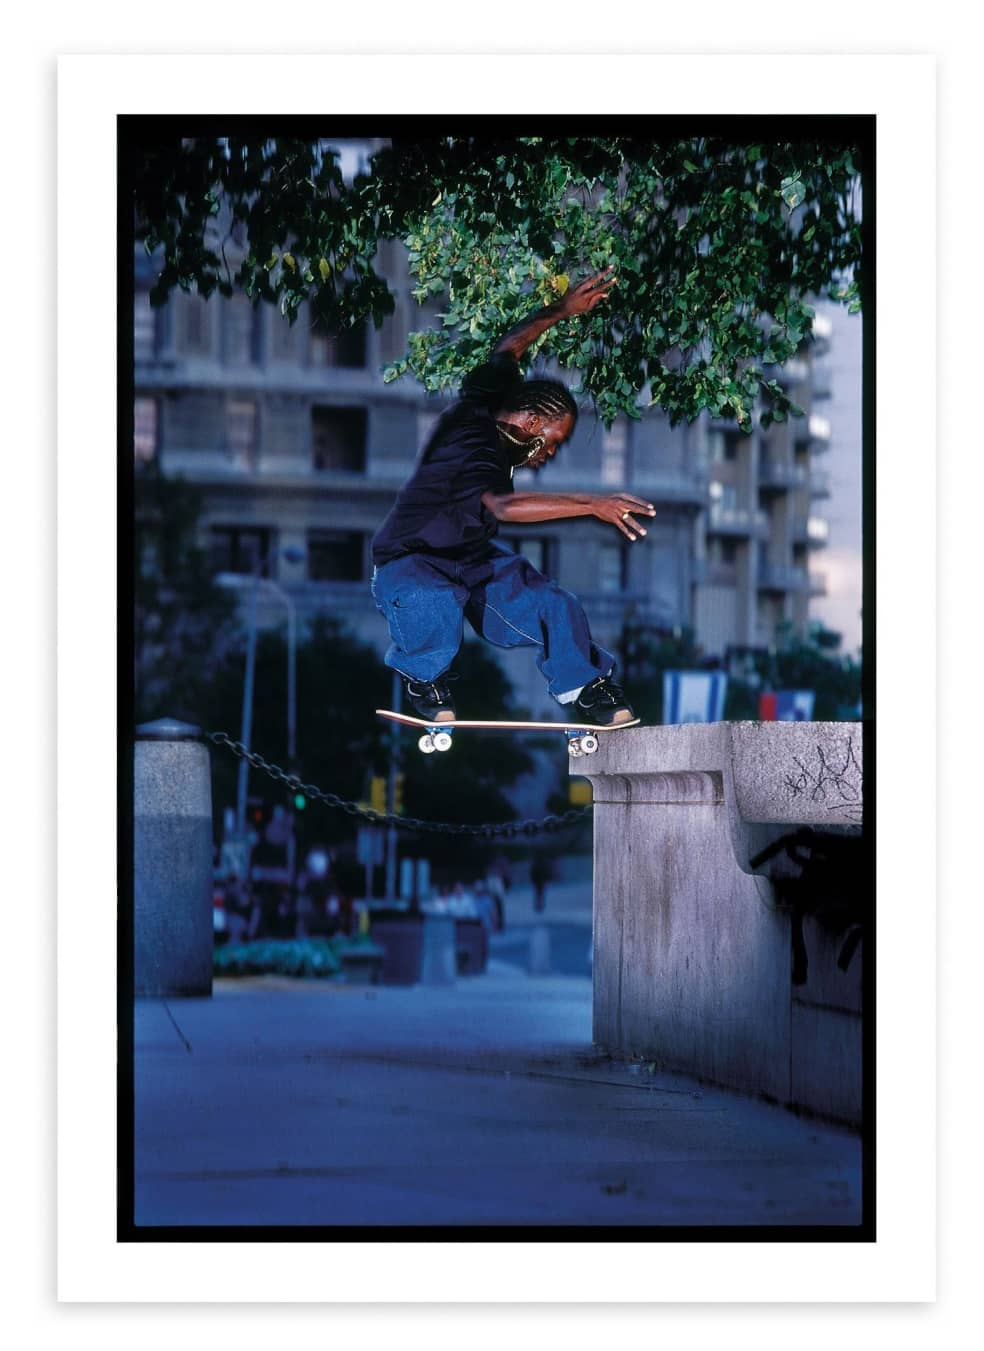 Stevie Williams, Love Park. 2000. | Photograph by Mike Blabac 1